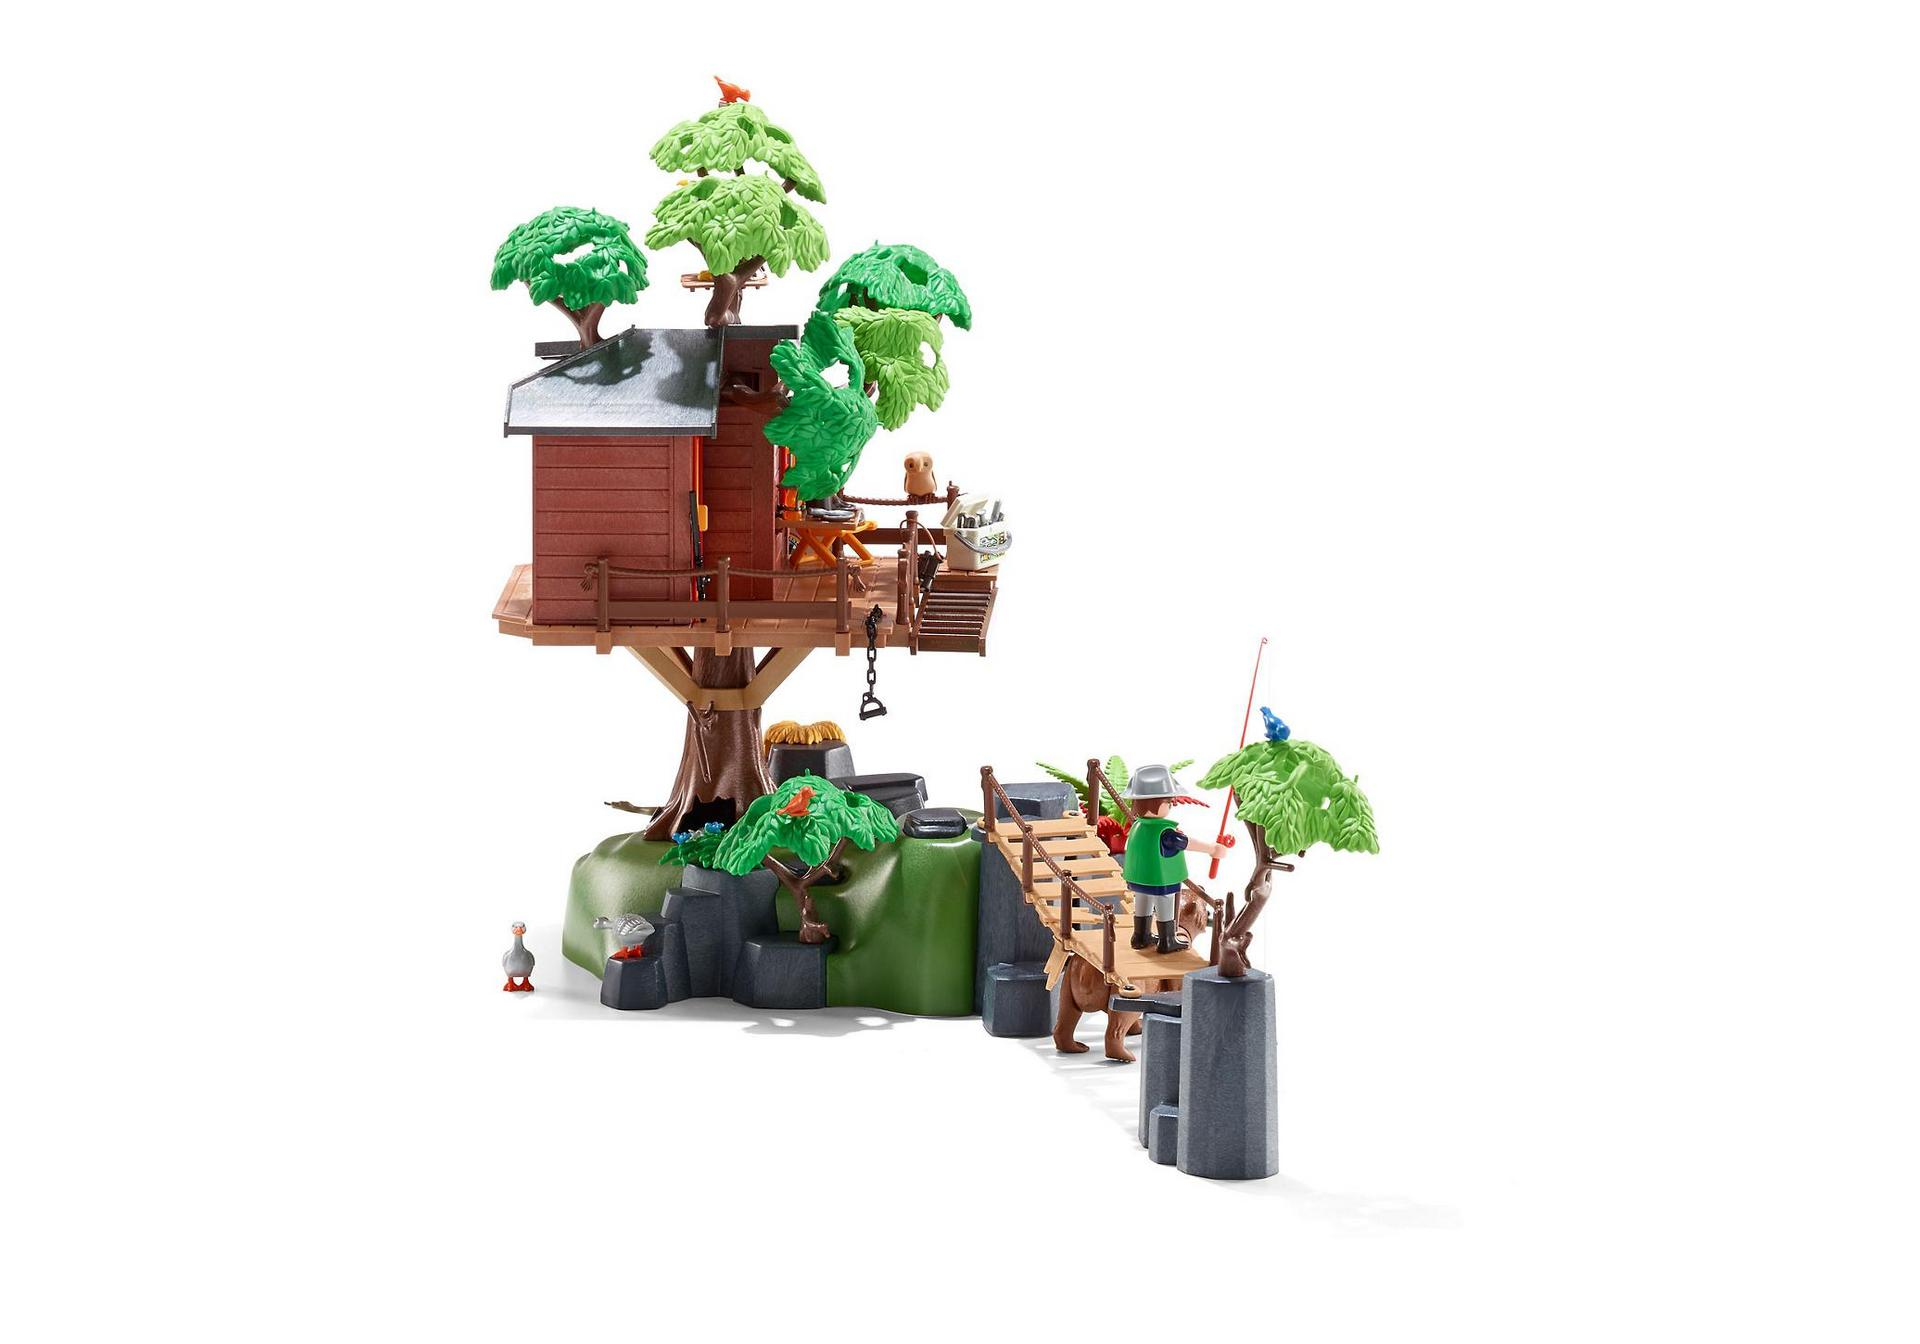 Ausmalbilder Playmobil Super 4 : Adventure Tree House 5557 Playmobil Estonia